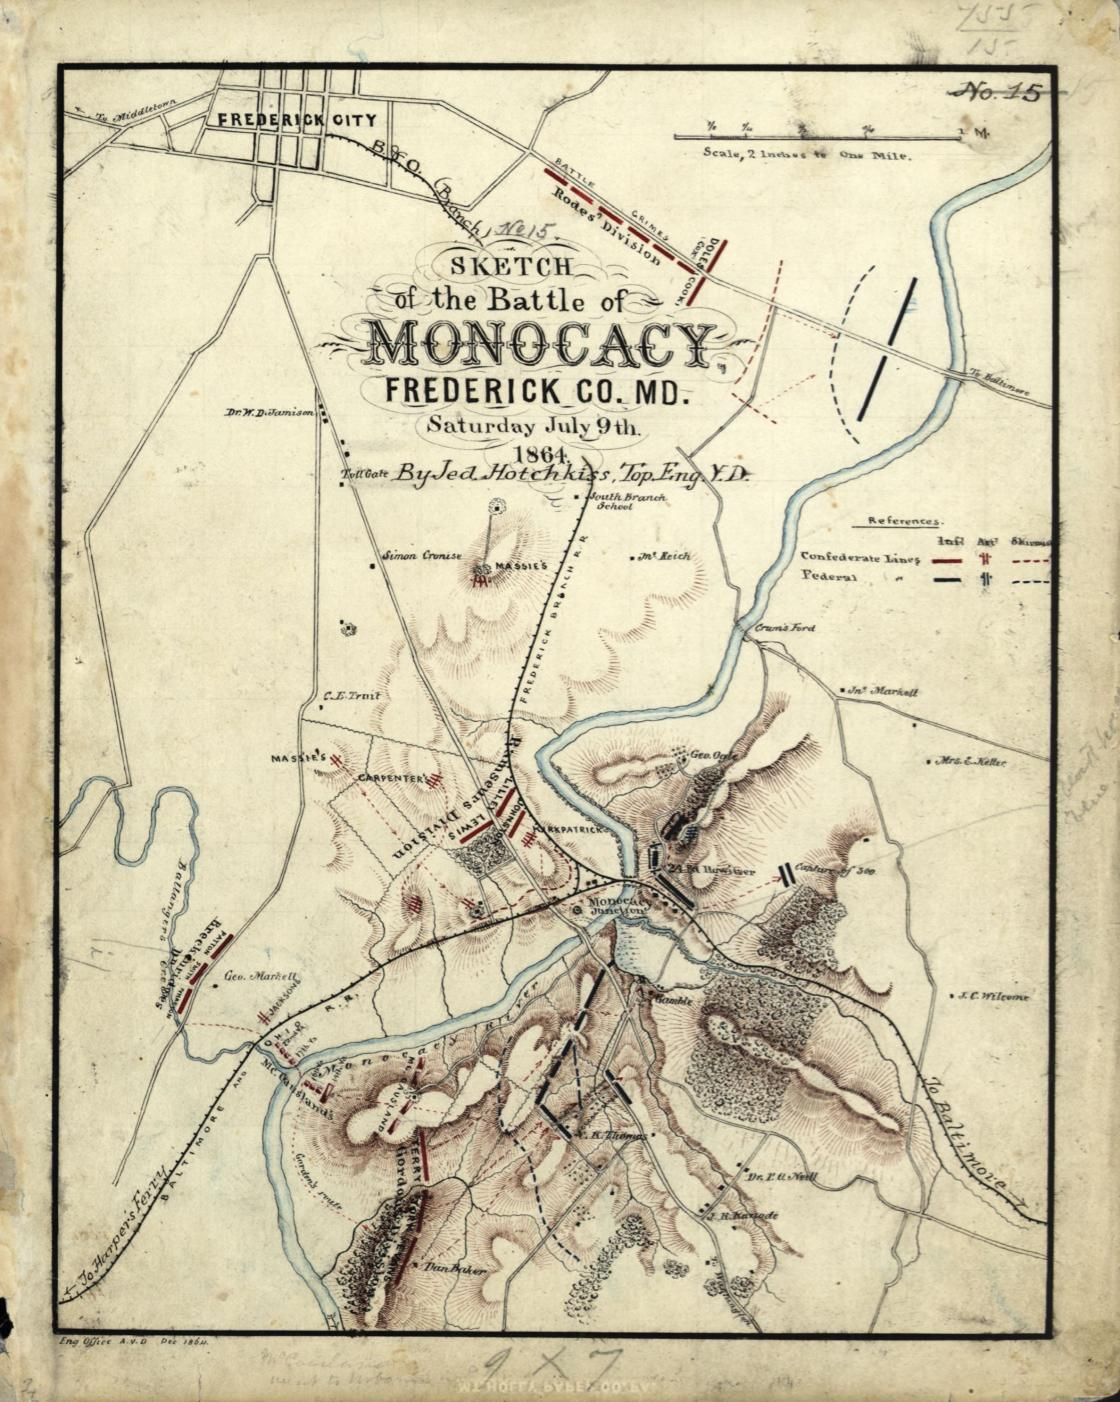 No. 15. Sketch of the Battle of Monocacy, Frederick Co. Md., Saturday, July 9th, 1864